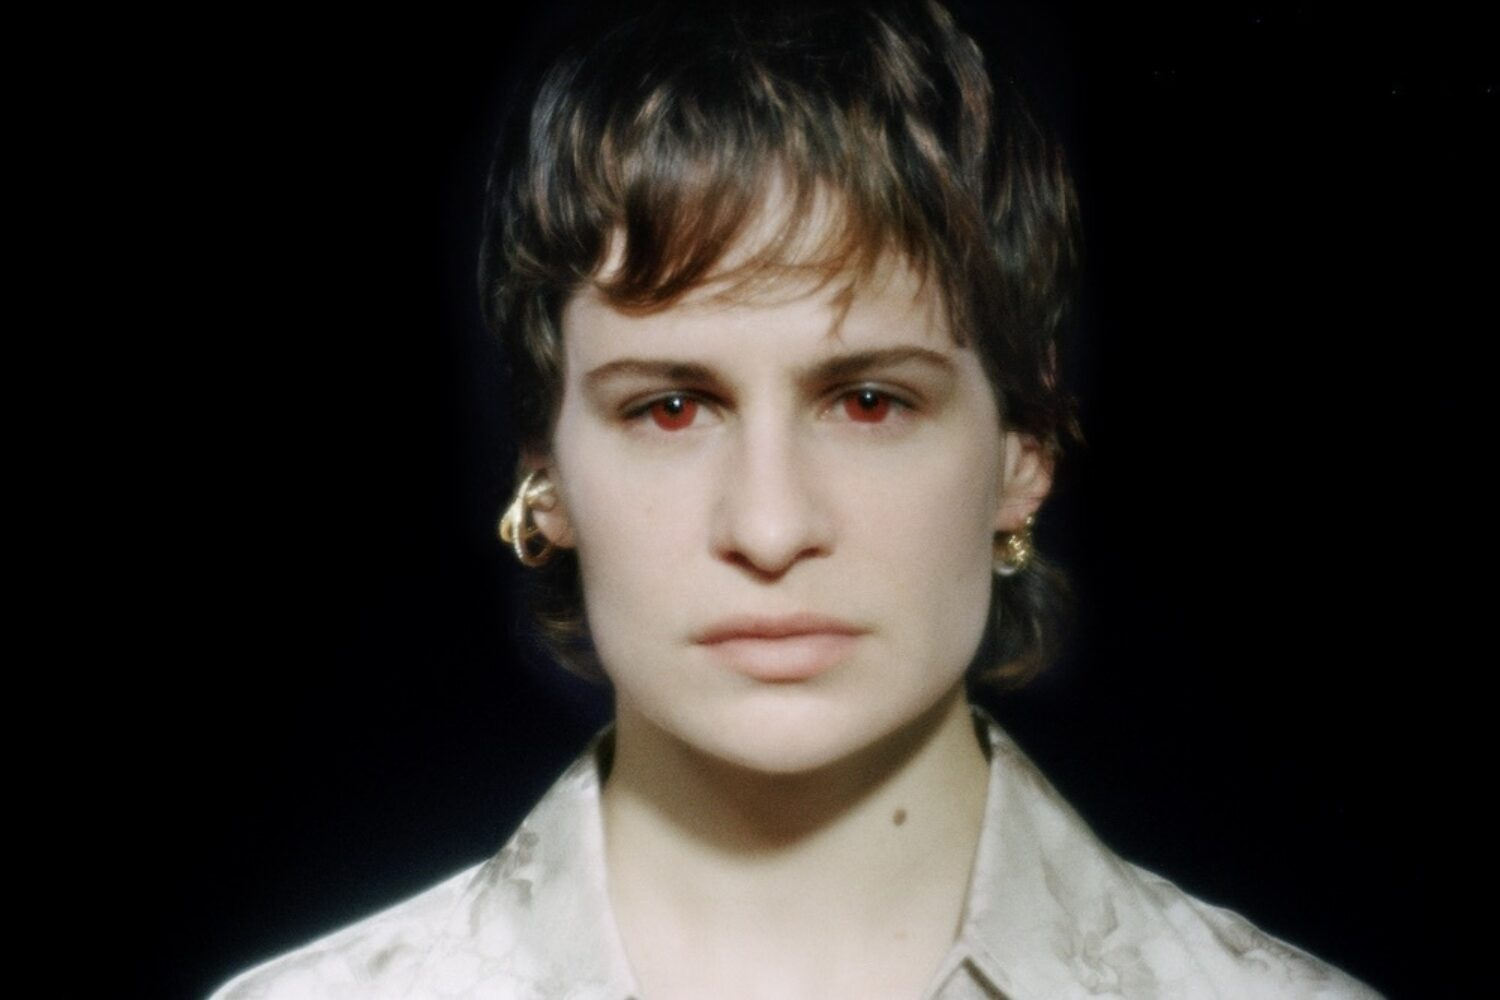 Christine and the Queens shares new song 'Eyes of a child'